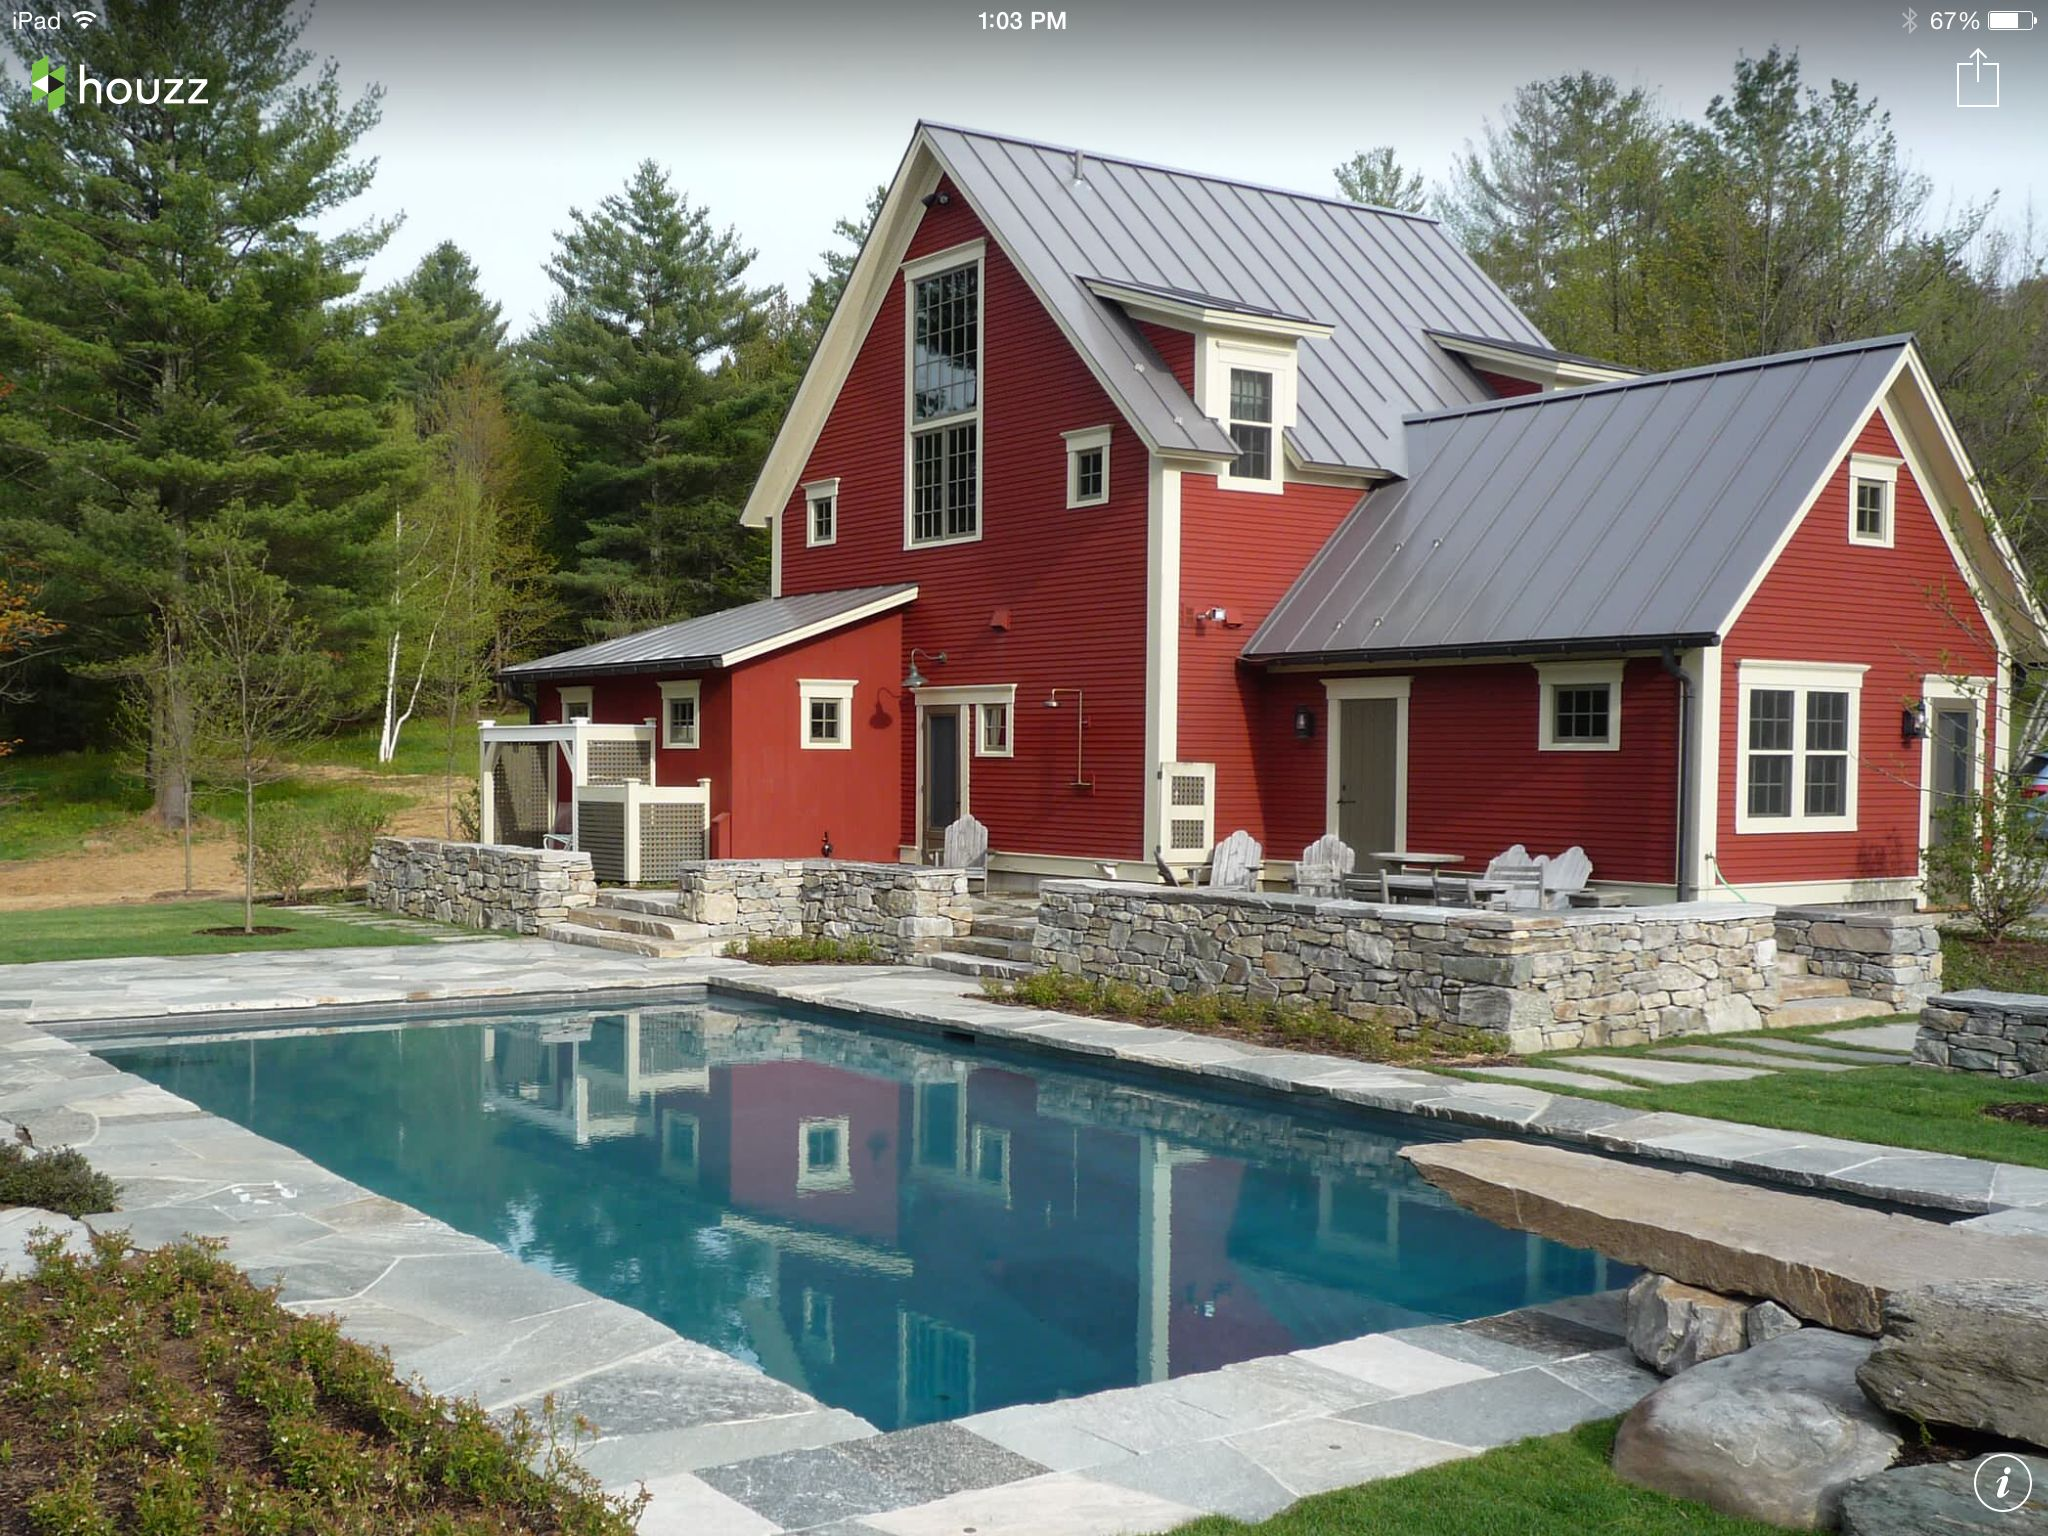 TOTALLY love the farmhouse and the stone around the pool